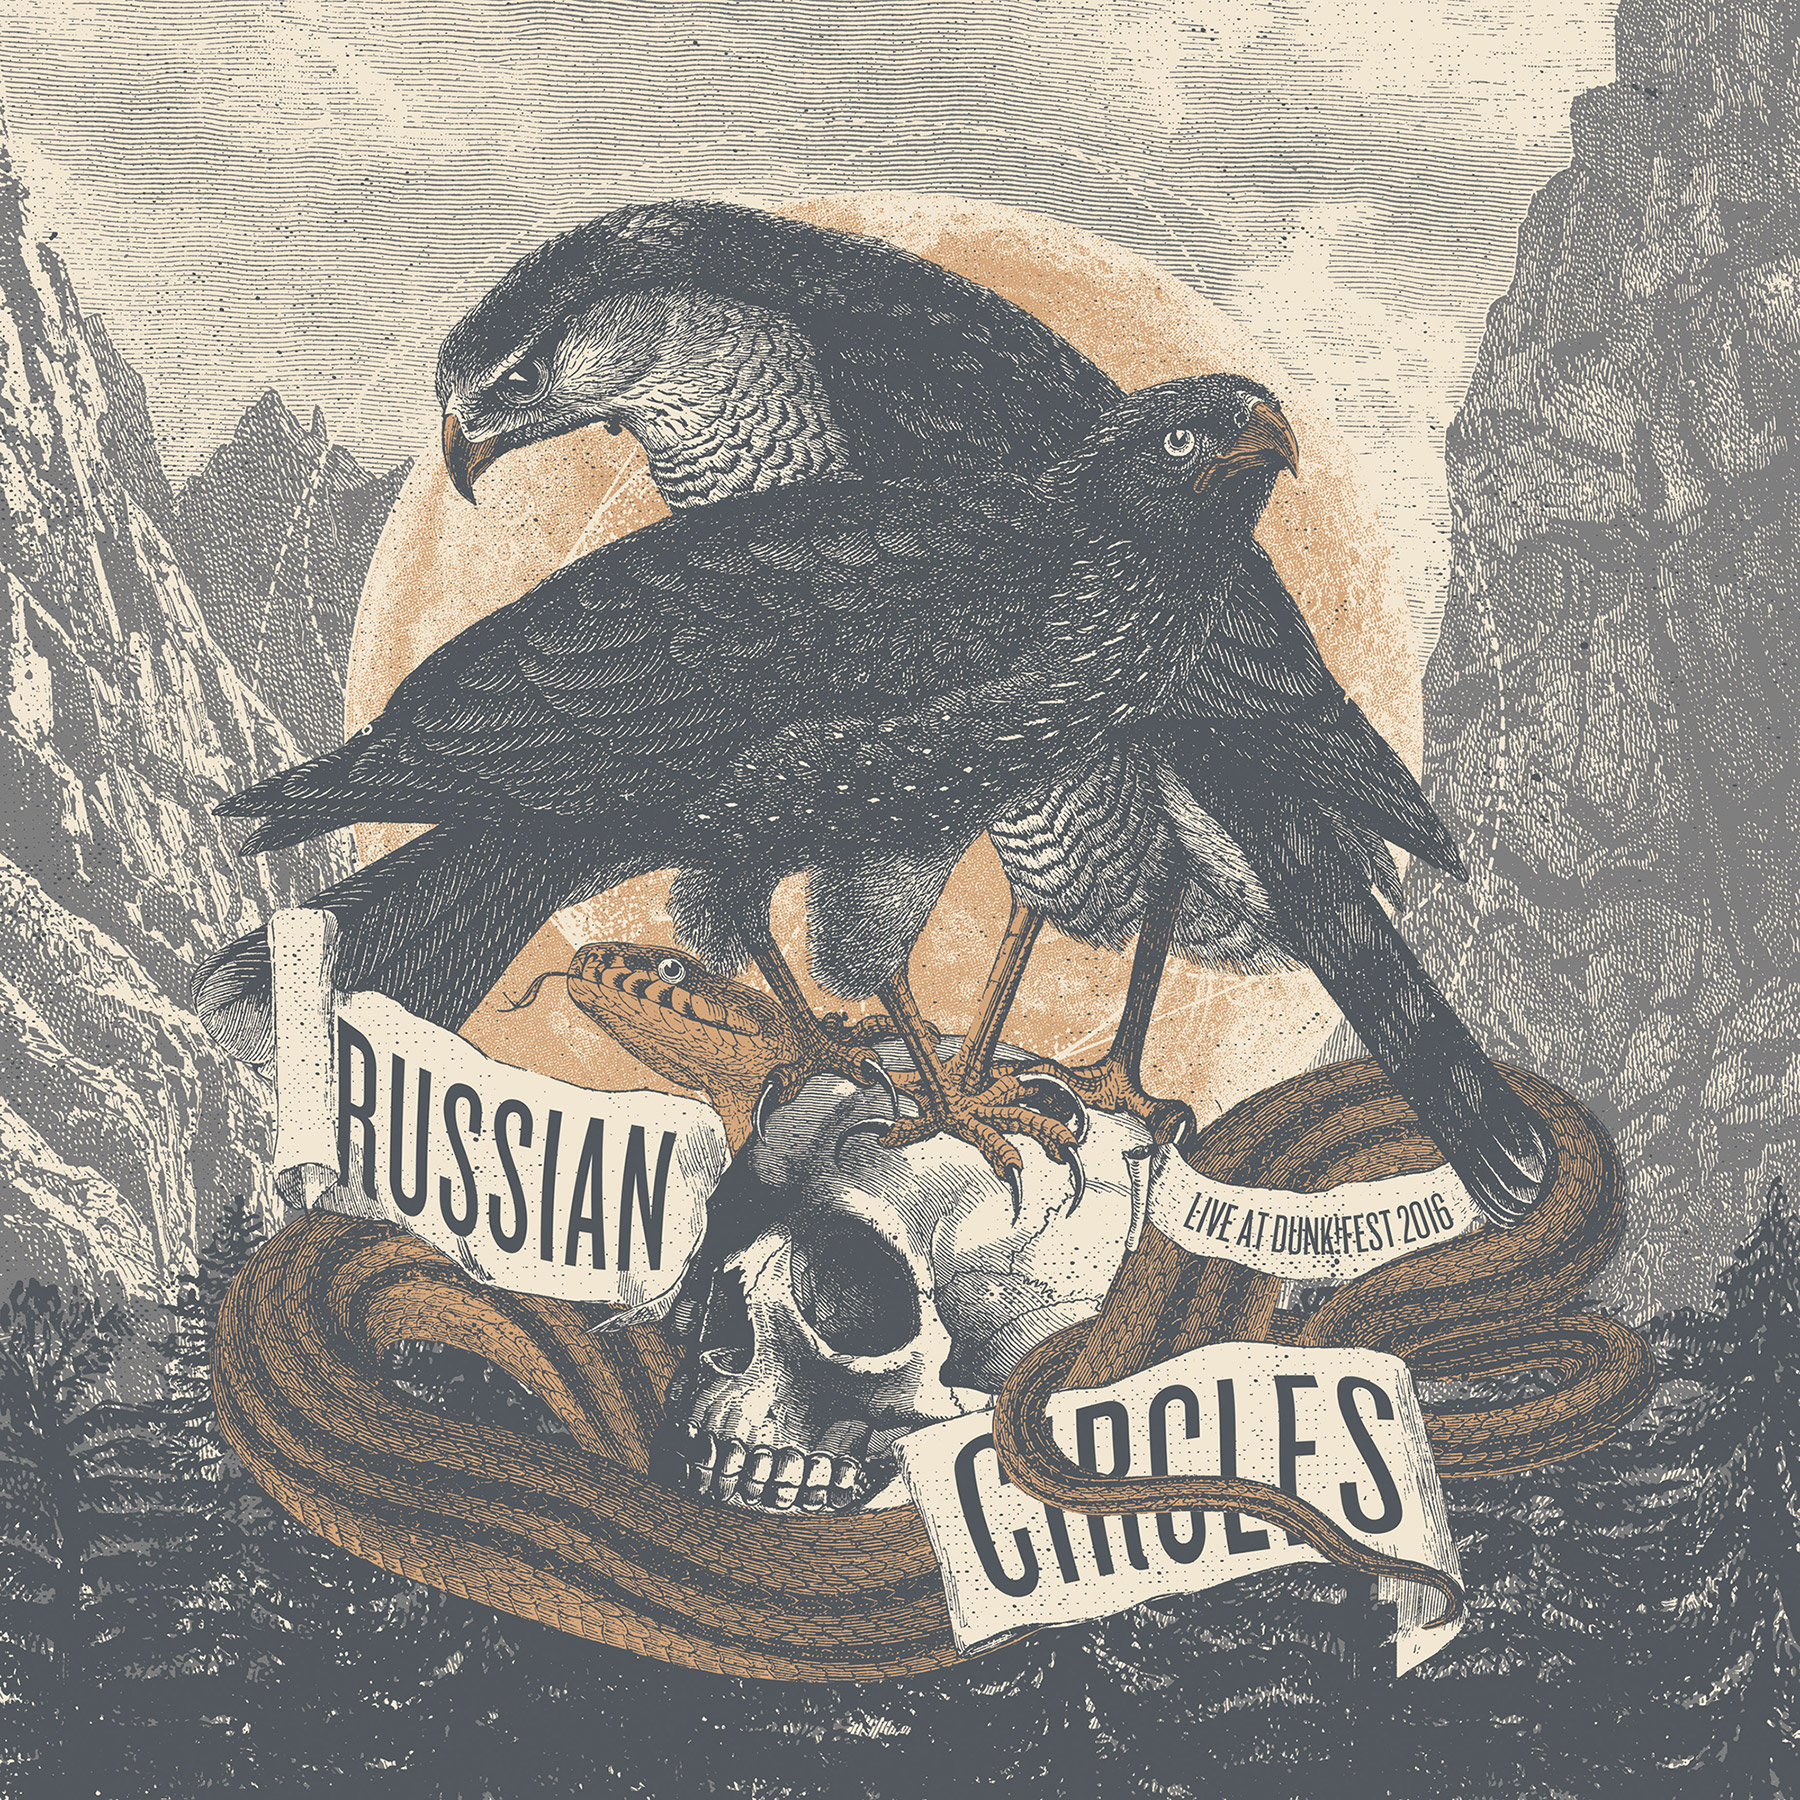 Russian Circles - 'Live at dunk!fest 2016' [2xLP]